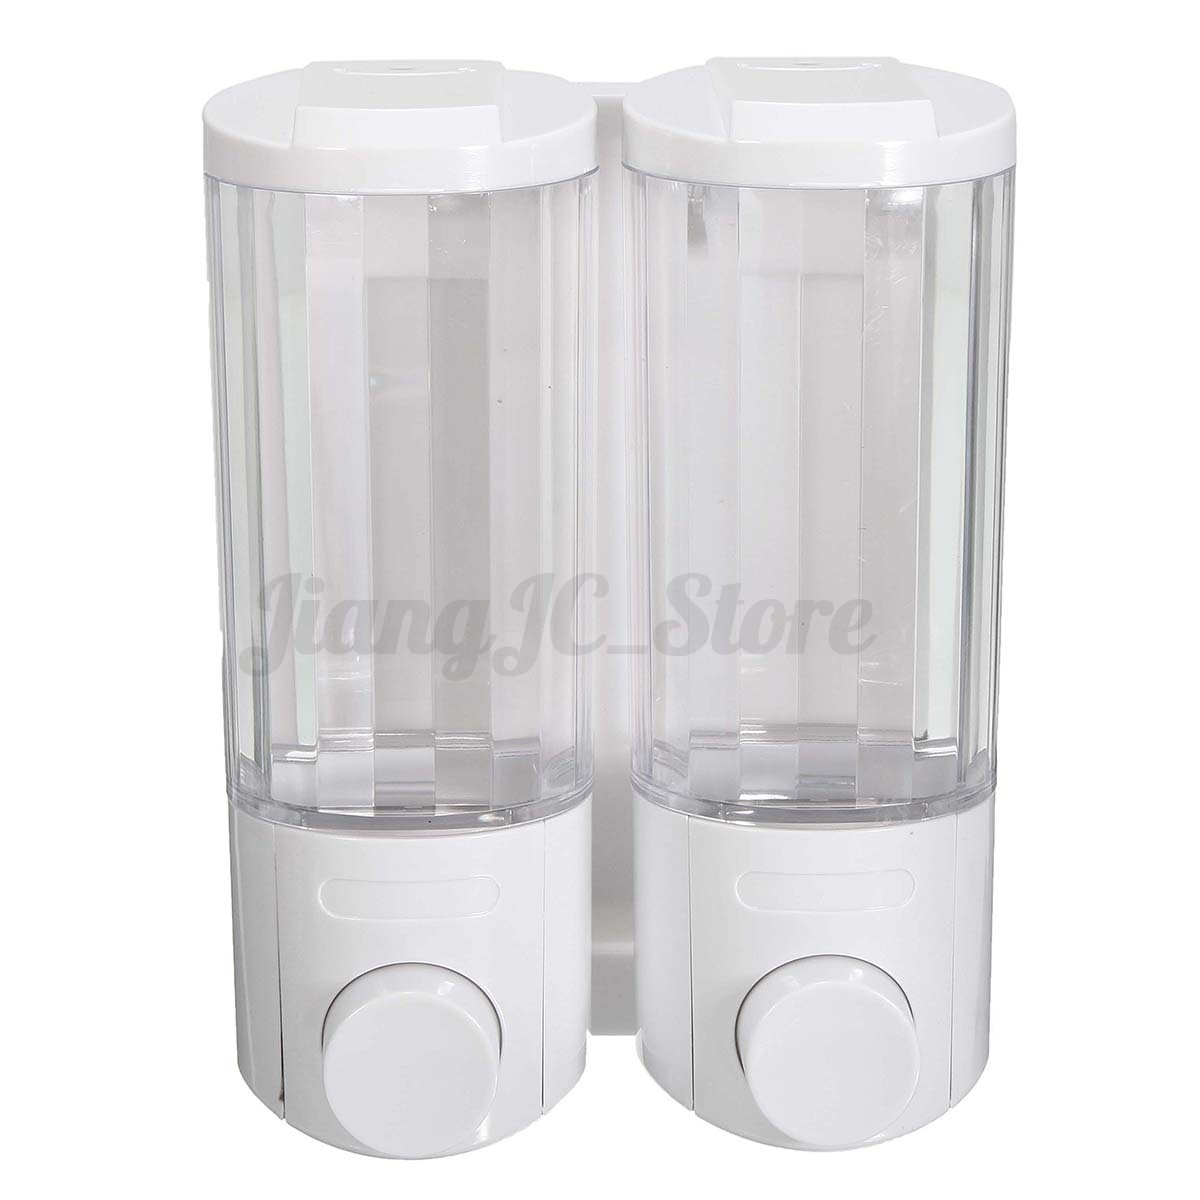 Restroom Soap Dispensers 2pcs Shower Gel Body Lotion Shampoo Liquid Wall Mounted